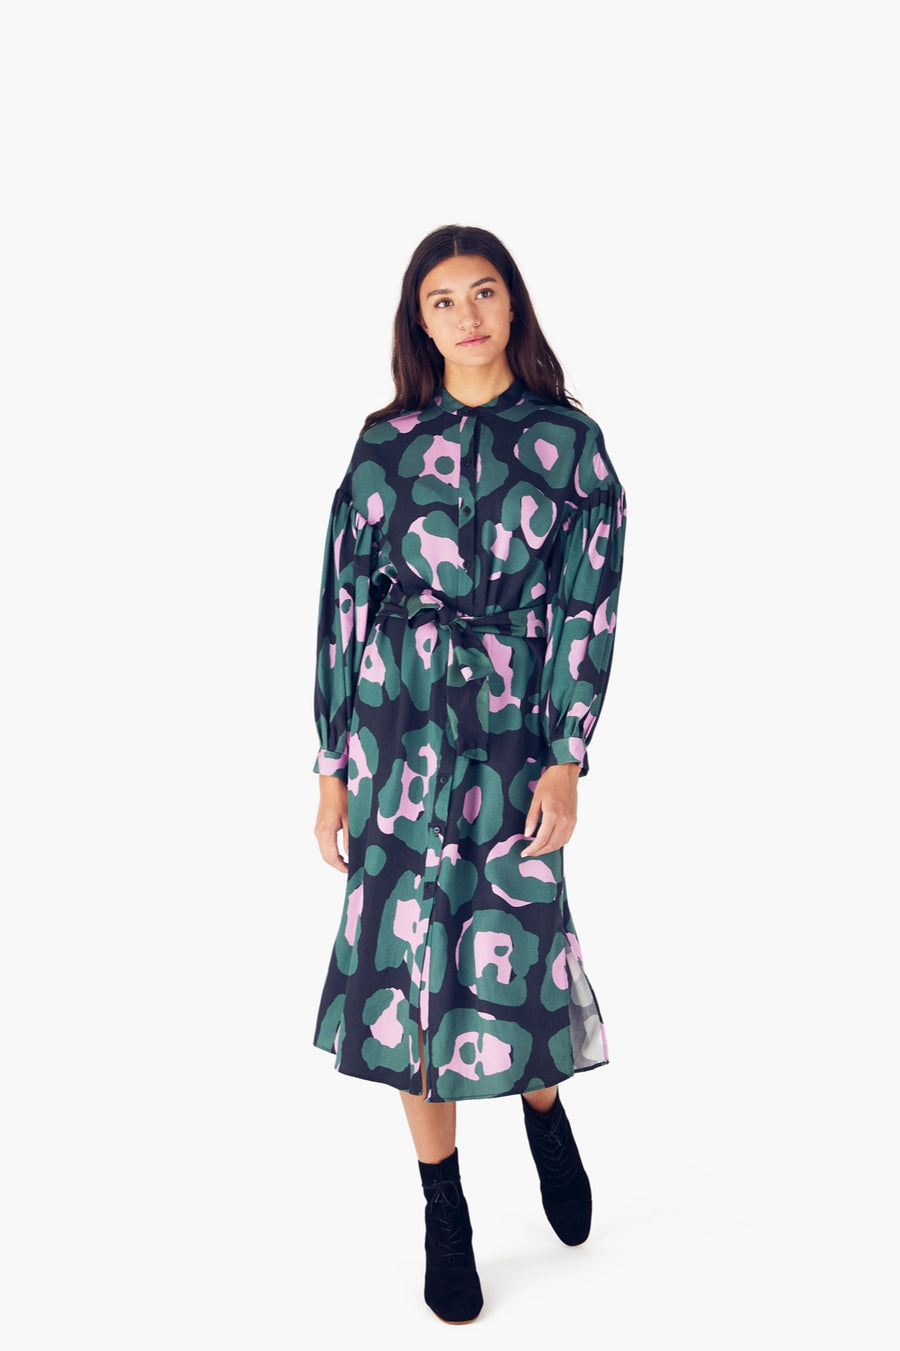 Etta Dress in Camo Jaguar